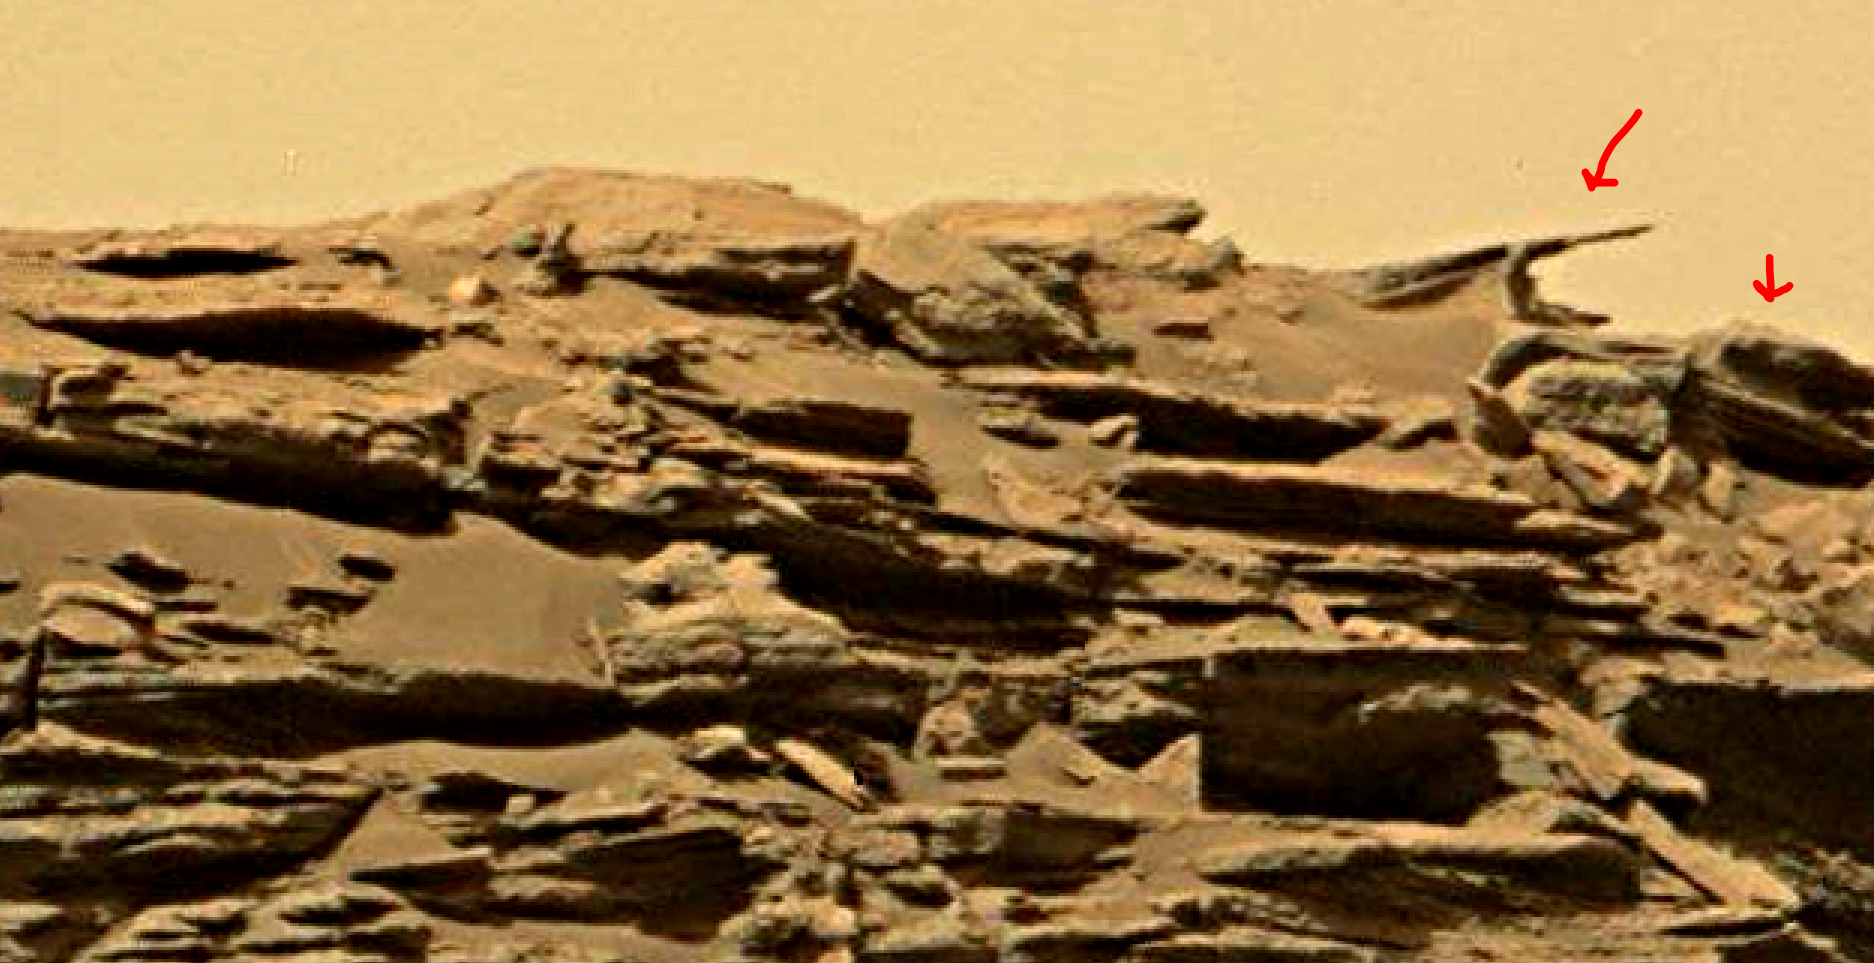 mars-sol-1454-anomaly-artifacts-6a-was-life-on-mars